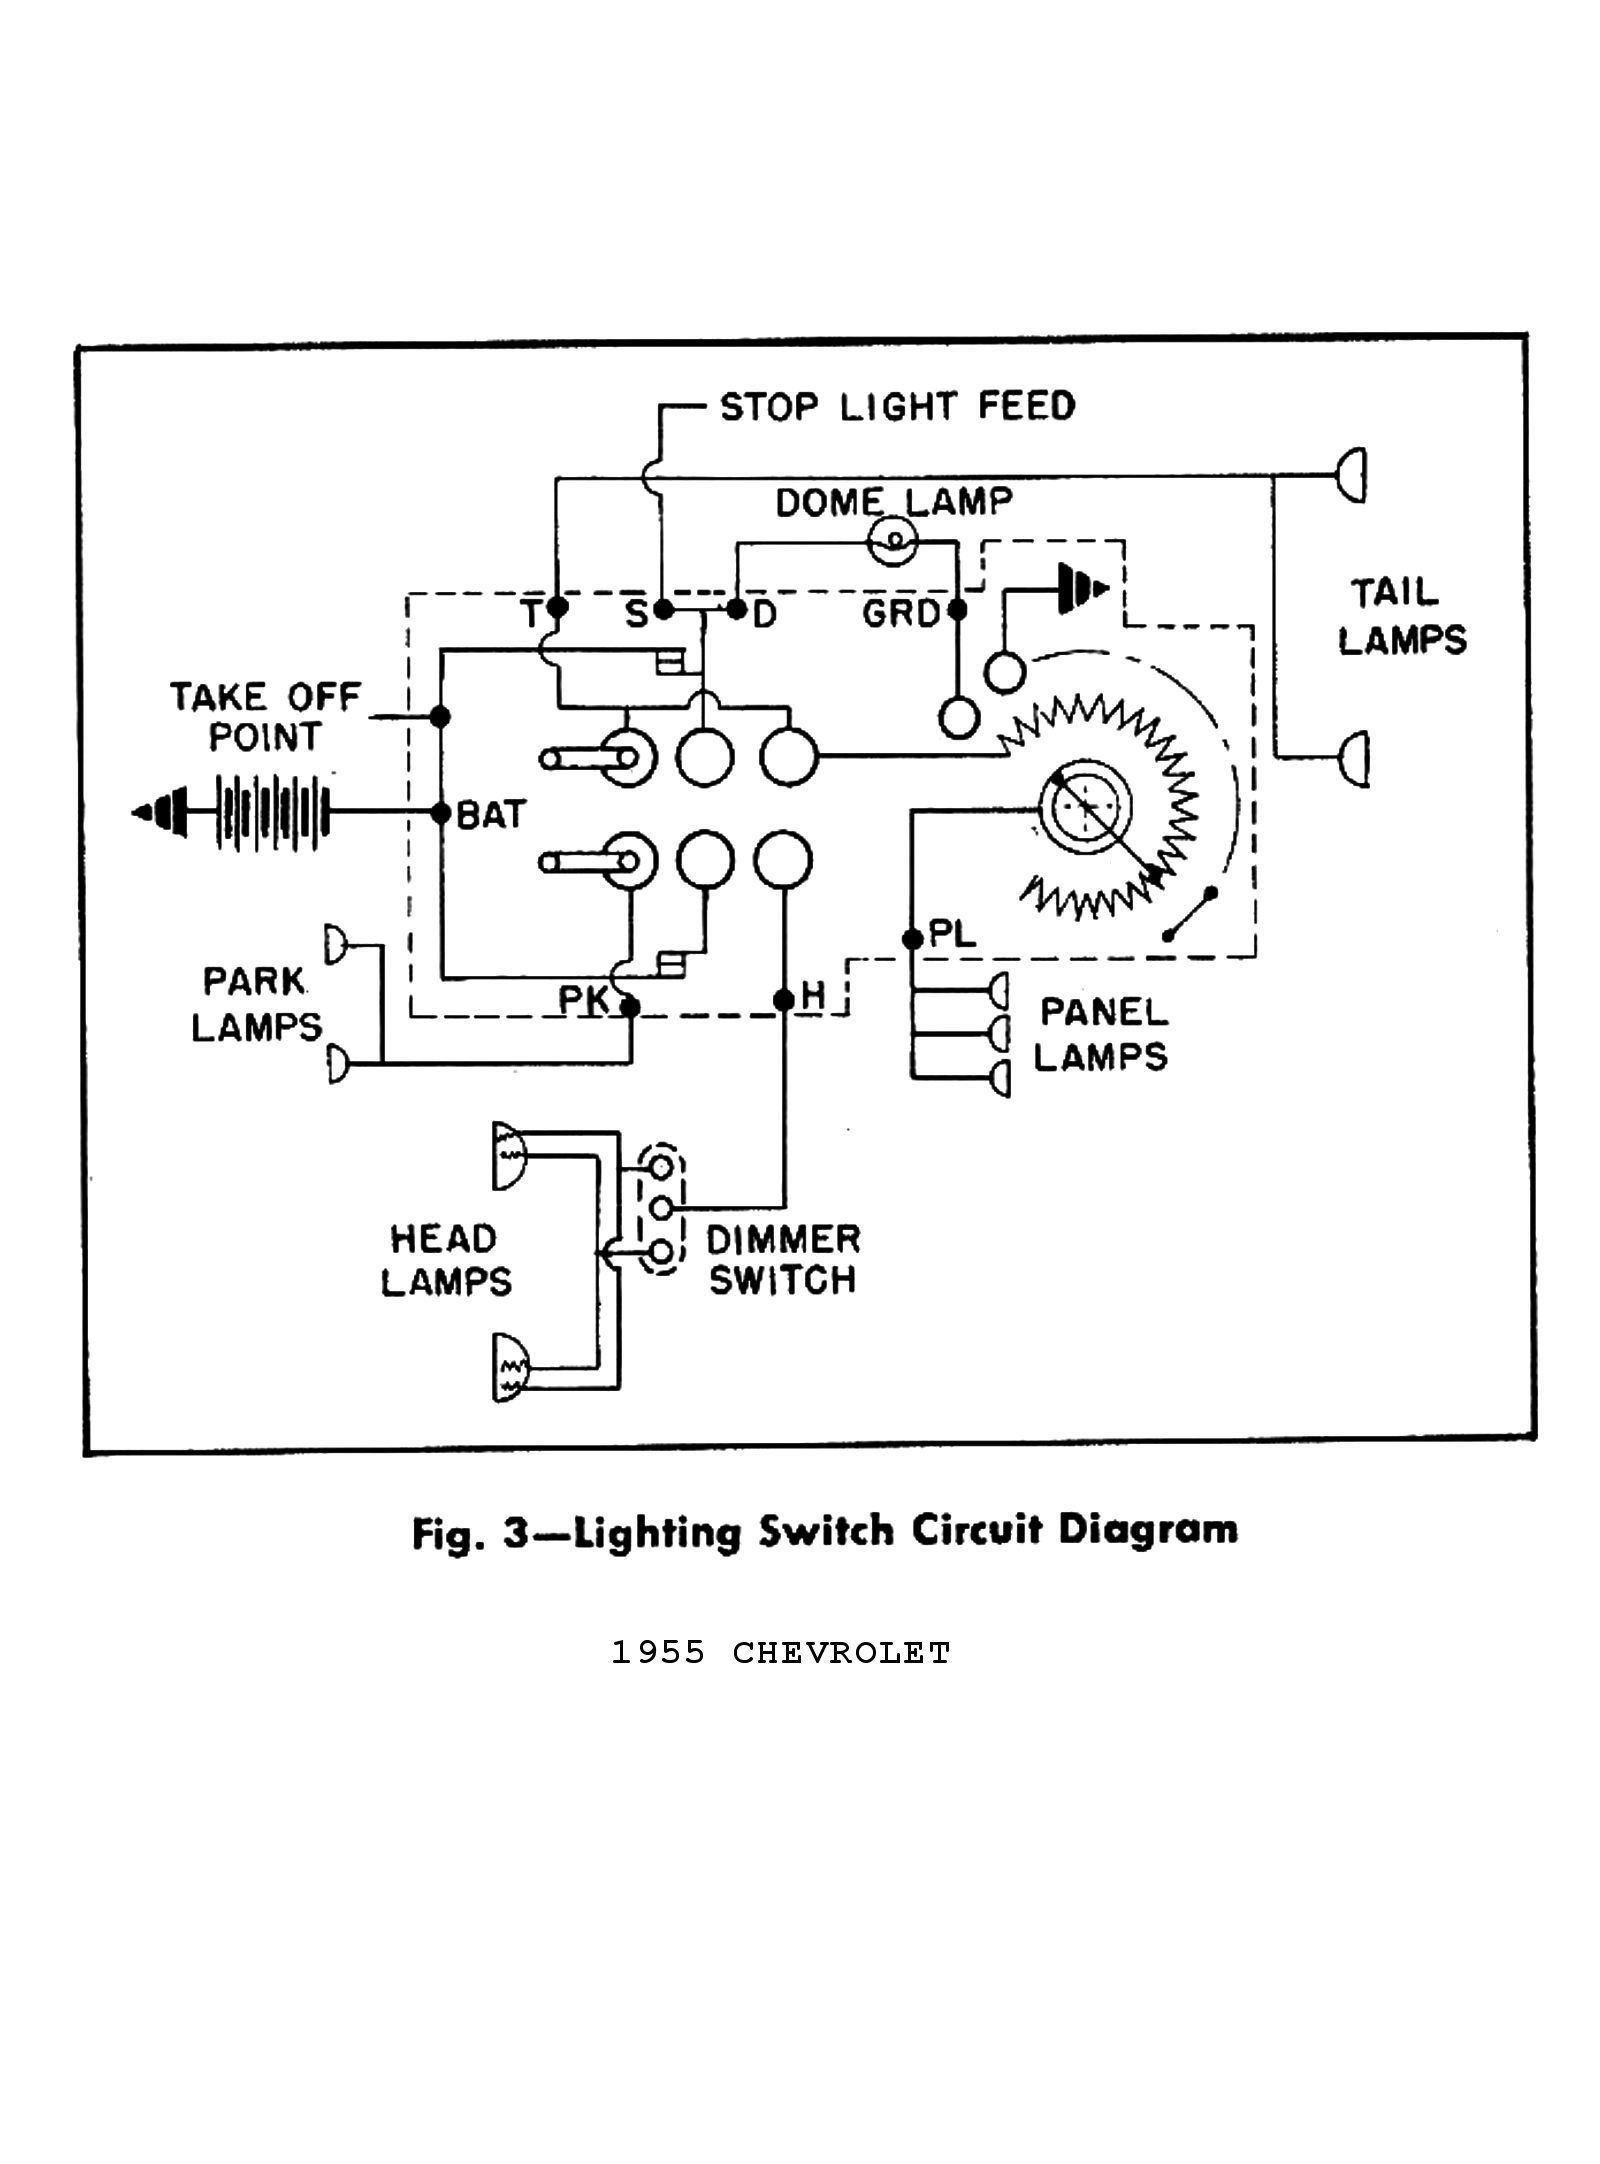 Universal Ignition Switch Wiring Diagram Inspirational 1955 Chevy Of for  1955 Chevy Ignition Switch Wiring Diagram